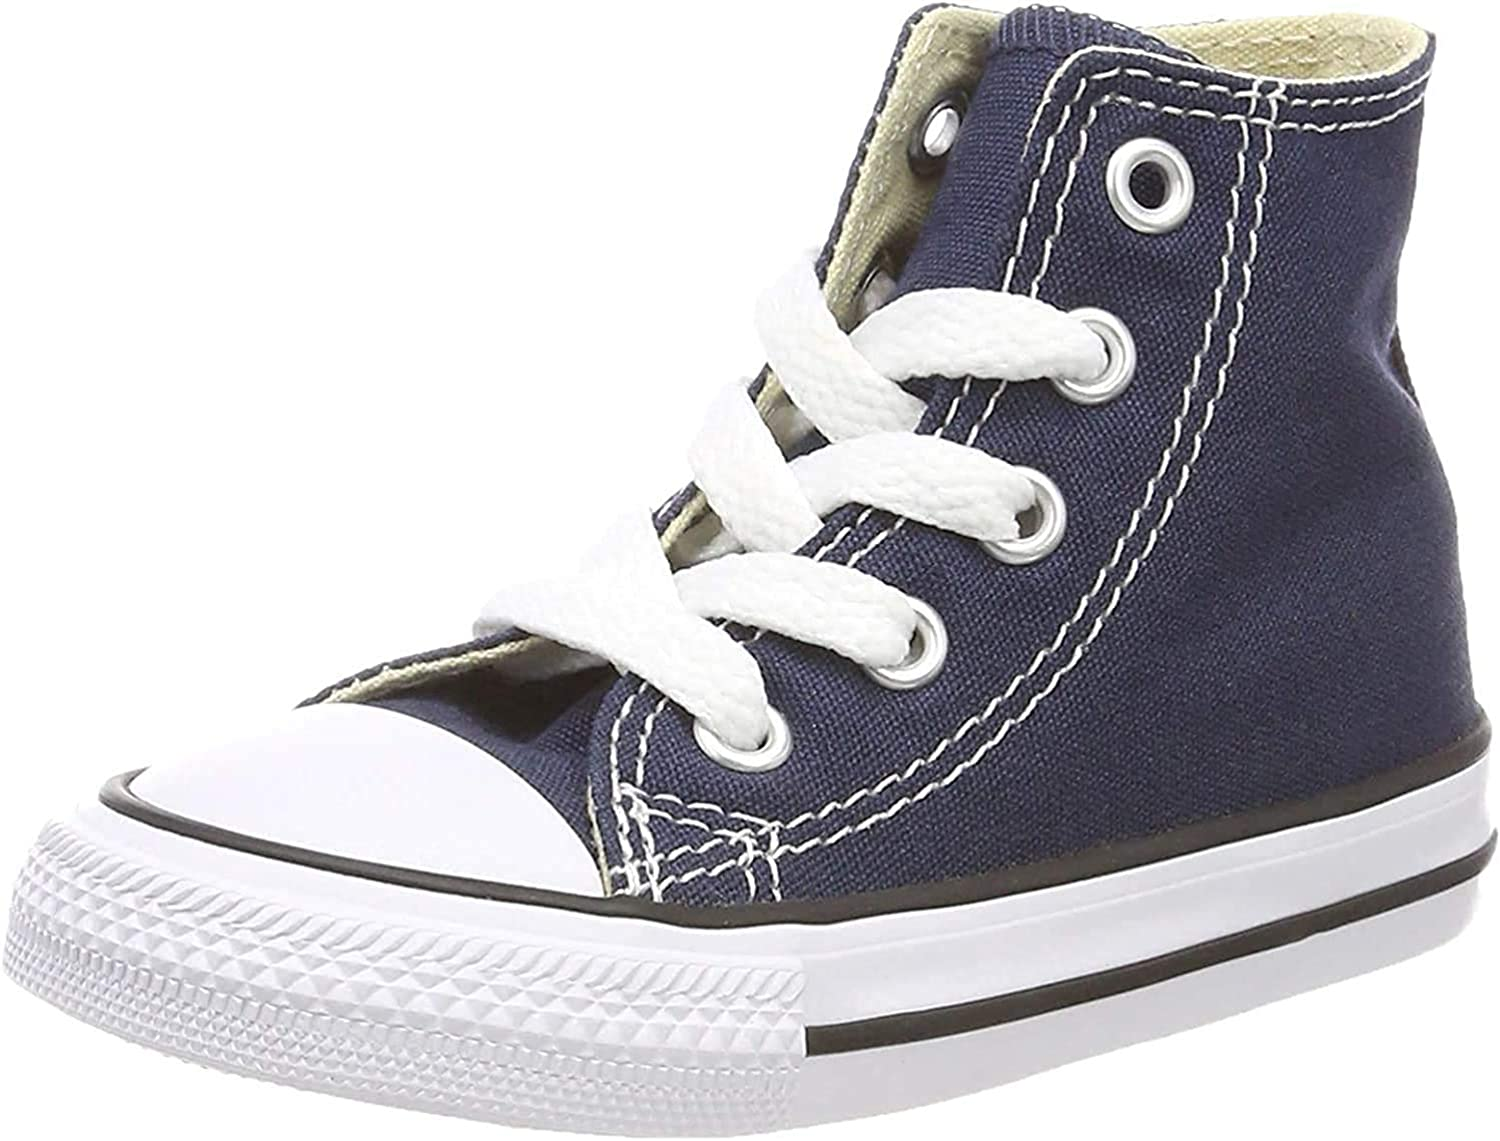 Kids Chuck Taylor Low/&High Top Trainer Sneaker All Stars OX Leisure Flat Shoes